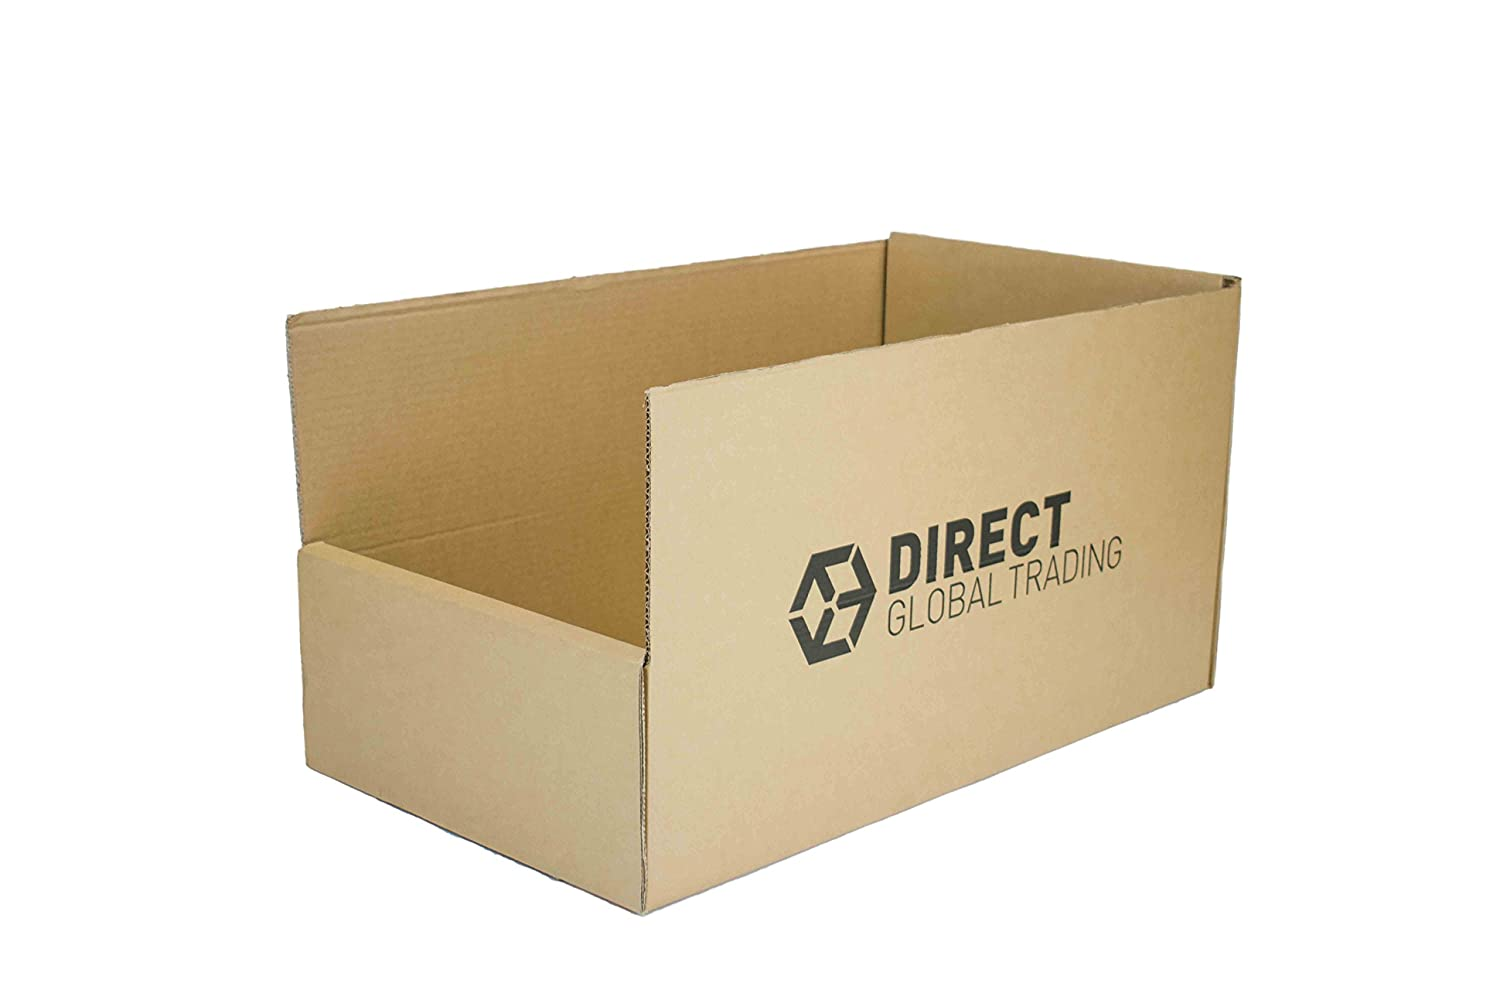 Double Wall Extra Strong Cardboard Warehouse Pick Bins Racking Storage Boxes (Pack of 10) Direct Global Trading